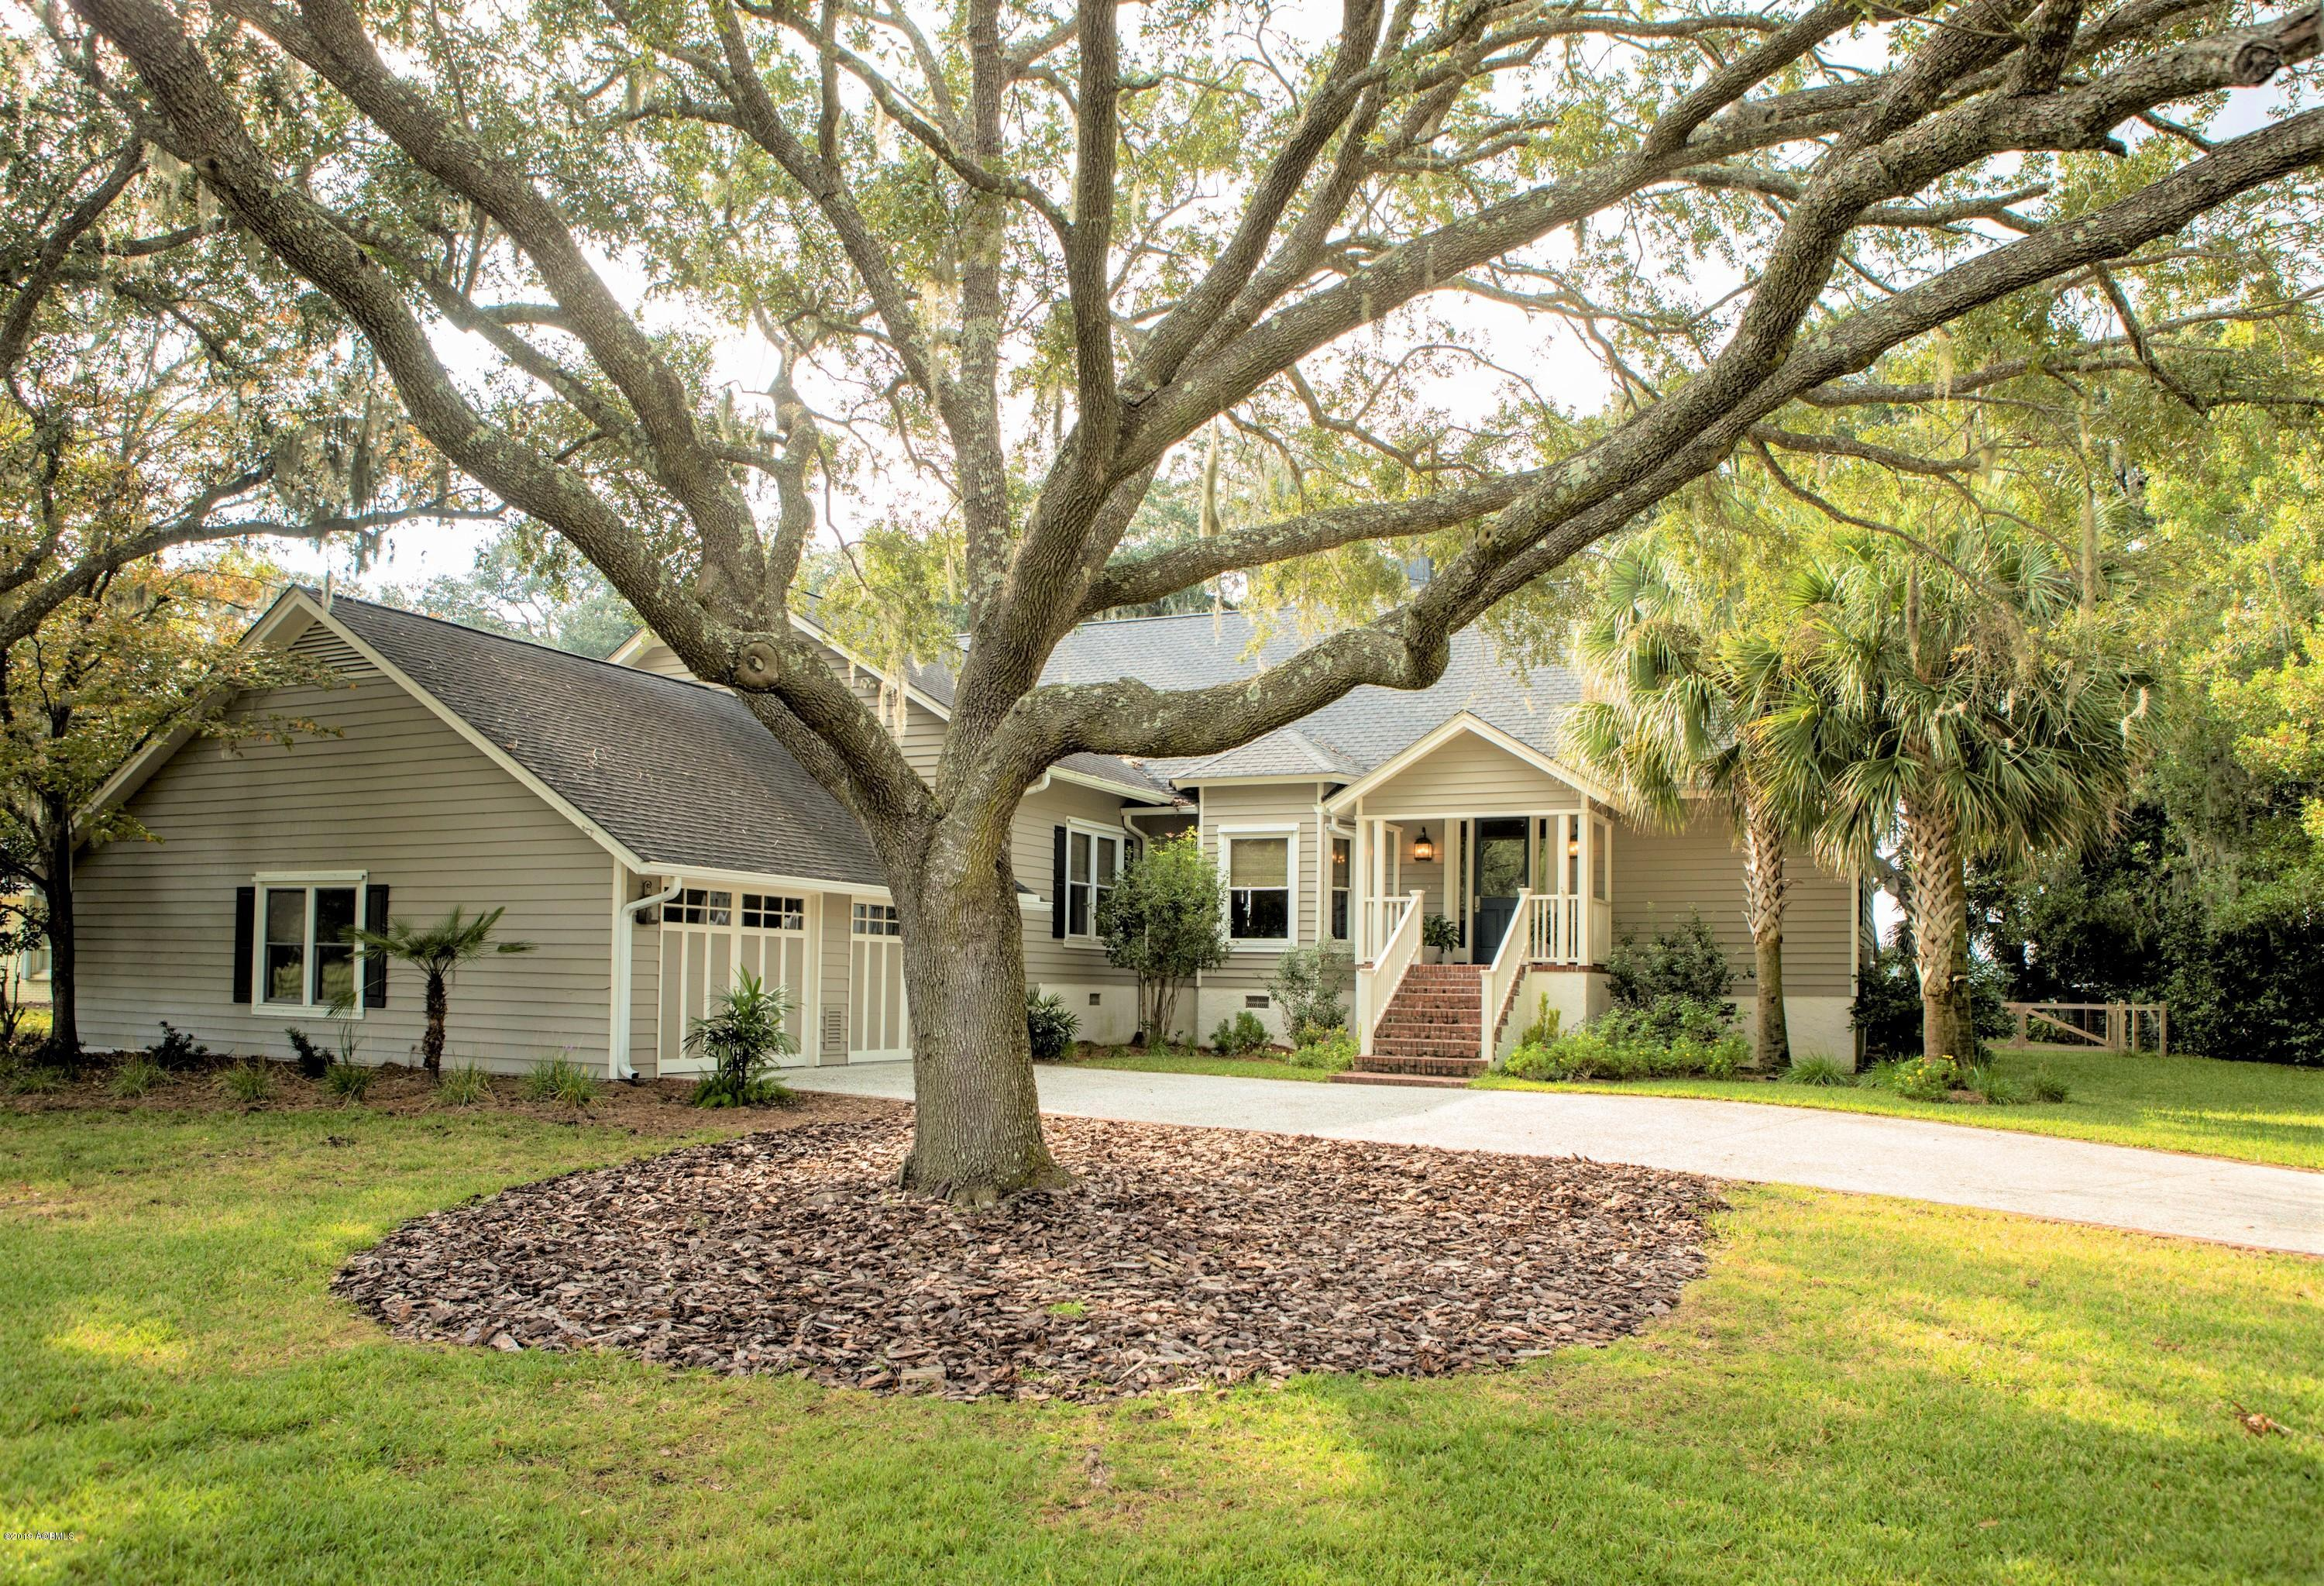 Photo of 4 Country Club Drive, Beaufort, SC 29907